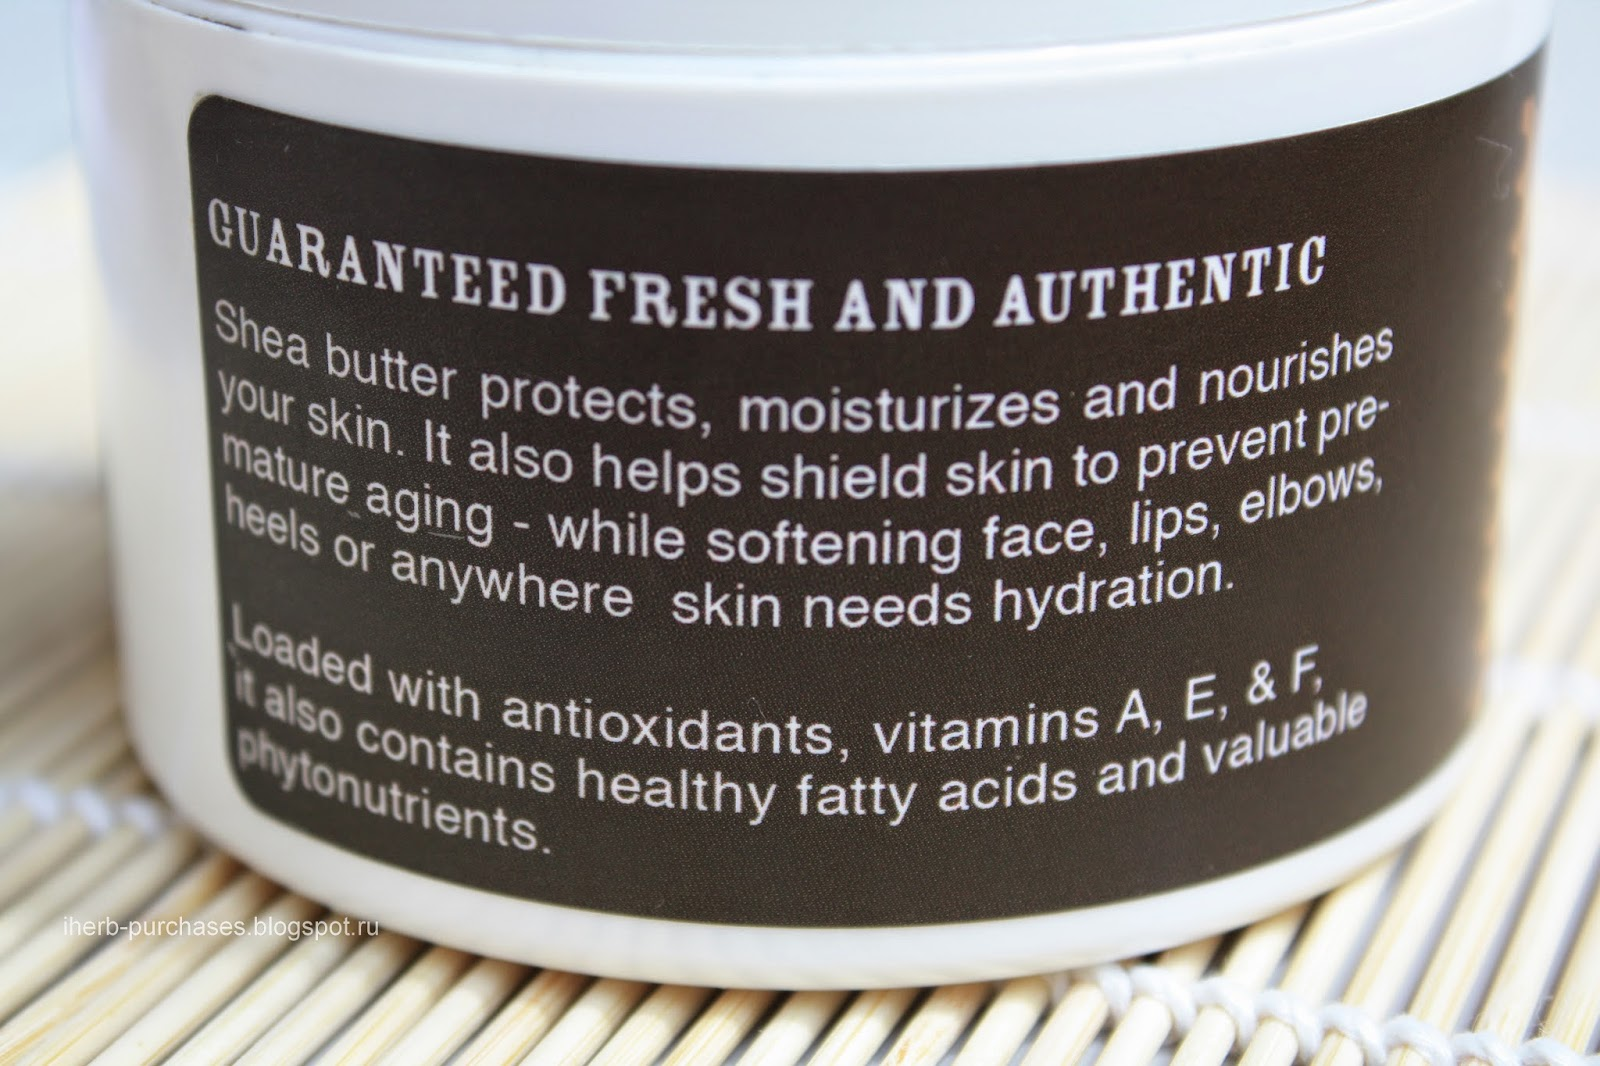 Out of Africa, 100% Pure and Unrefined Shea Butter, Raw and Wild Crafted, 8 oz (227 g)